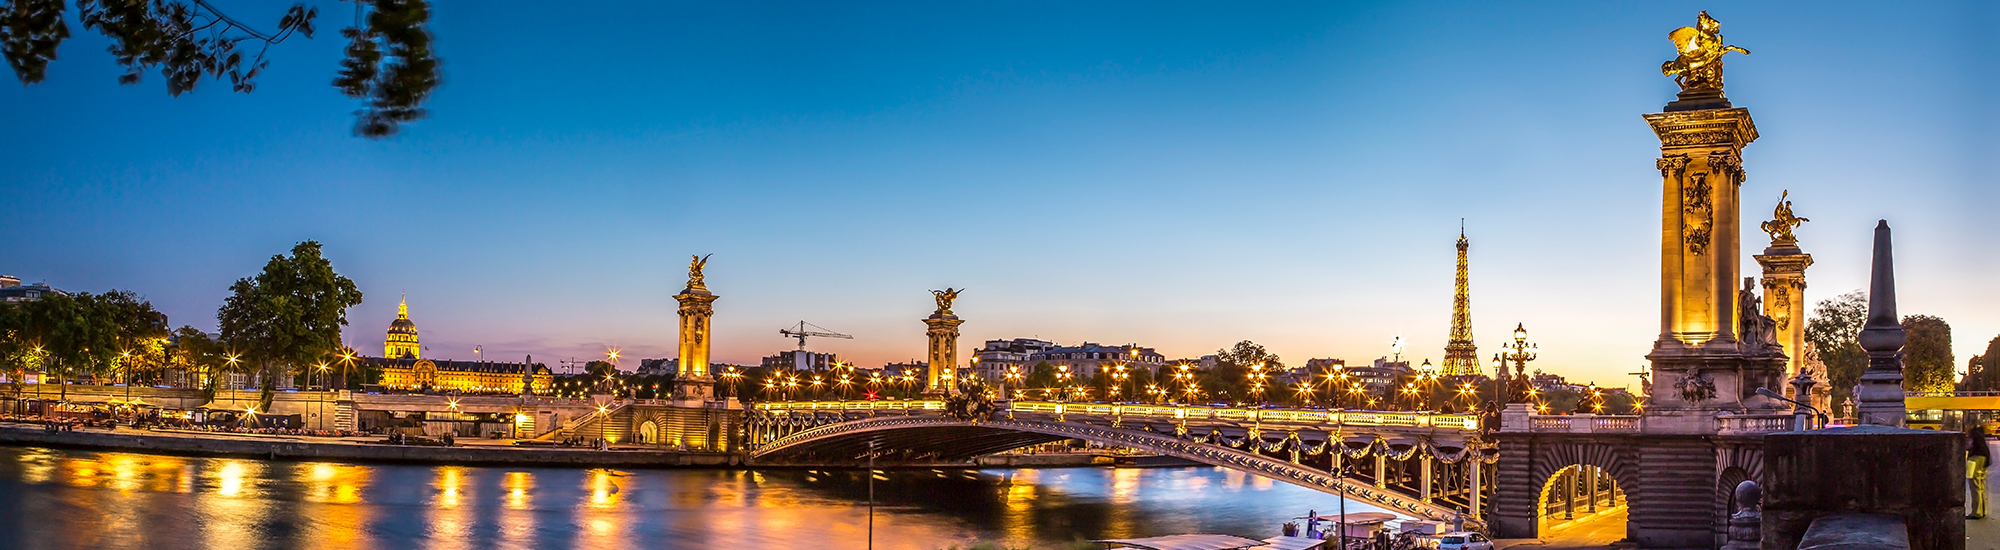 Experience the best of France with Great Experience Travel